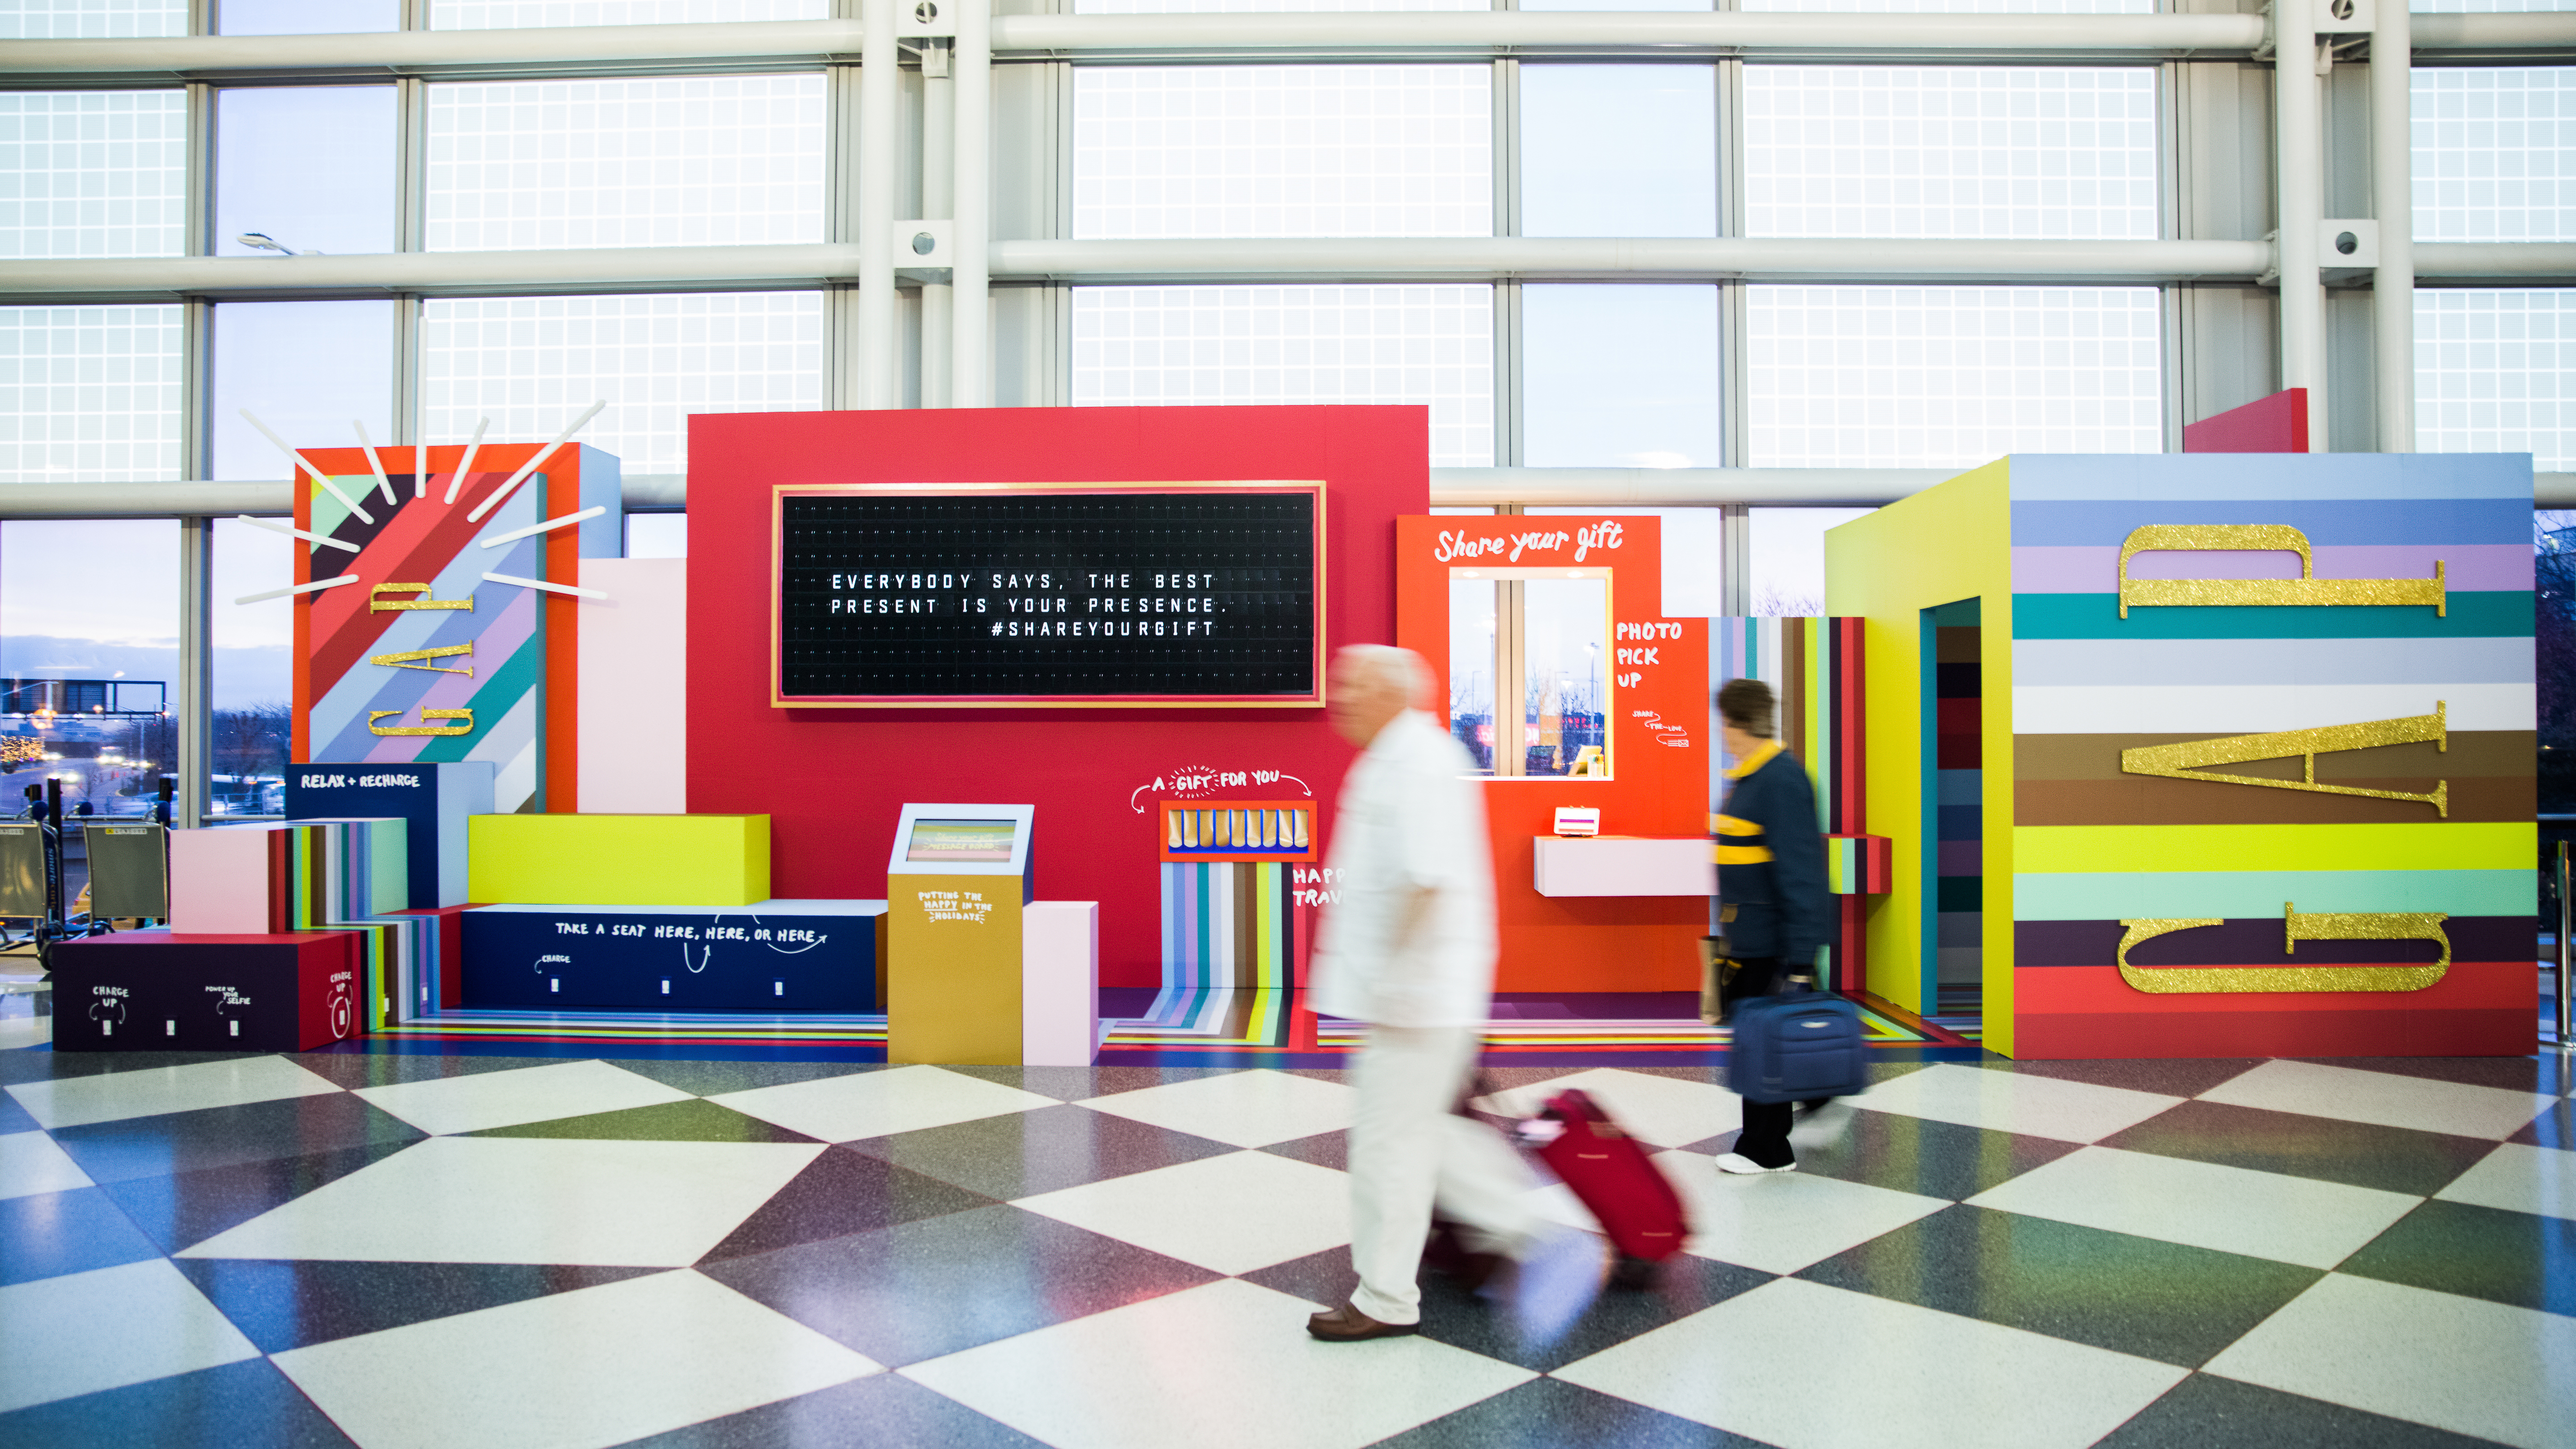 A Gap pop-up event at Chicago O'Hare